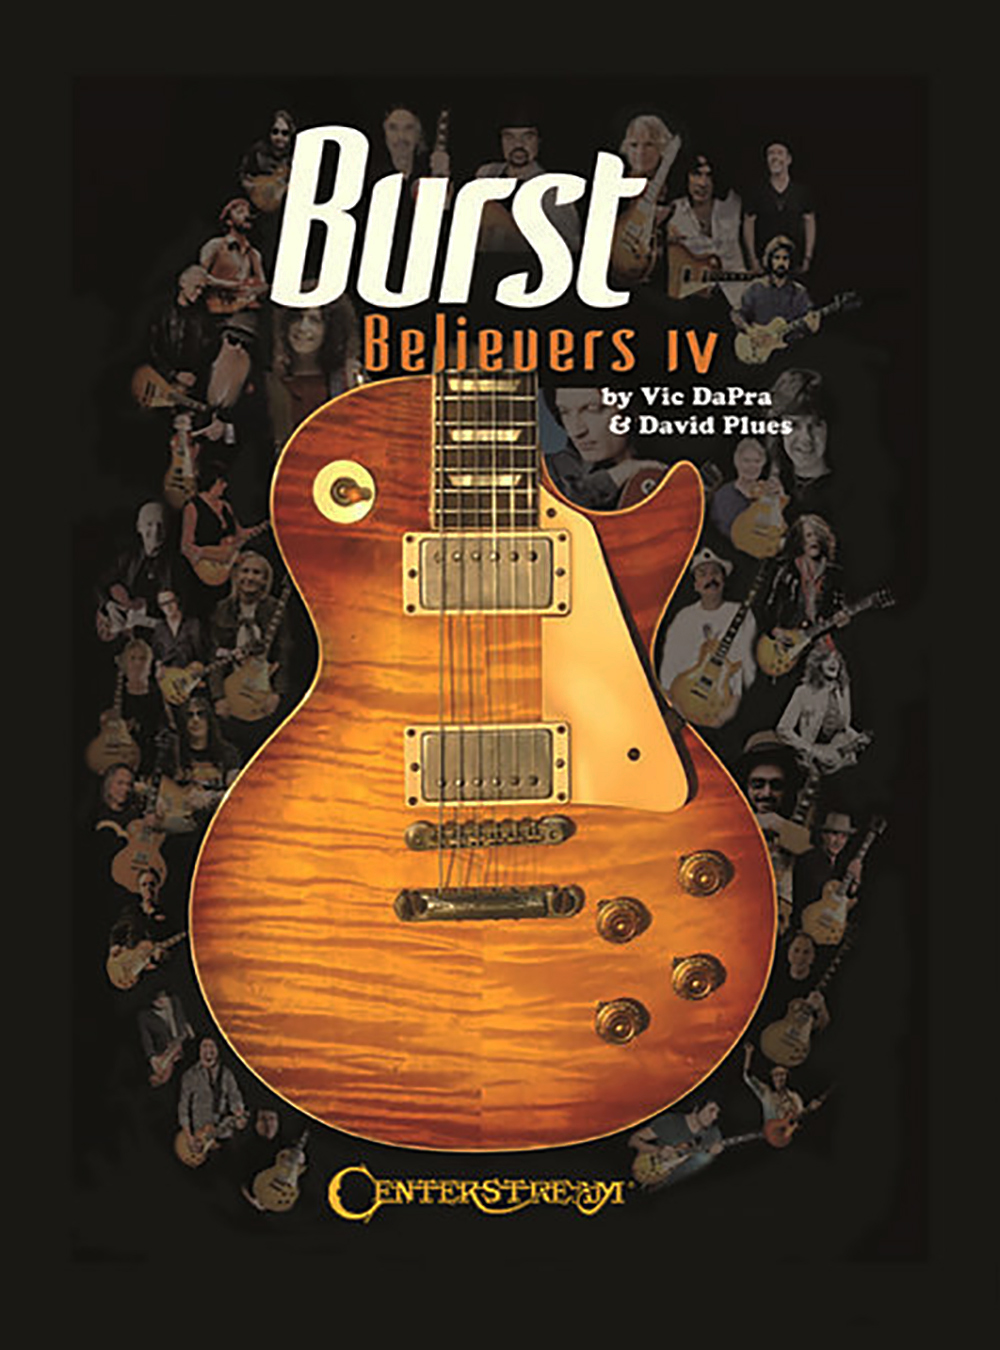 burst believers IV, by vic dapra and david plues